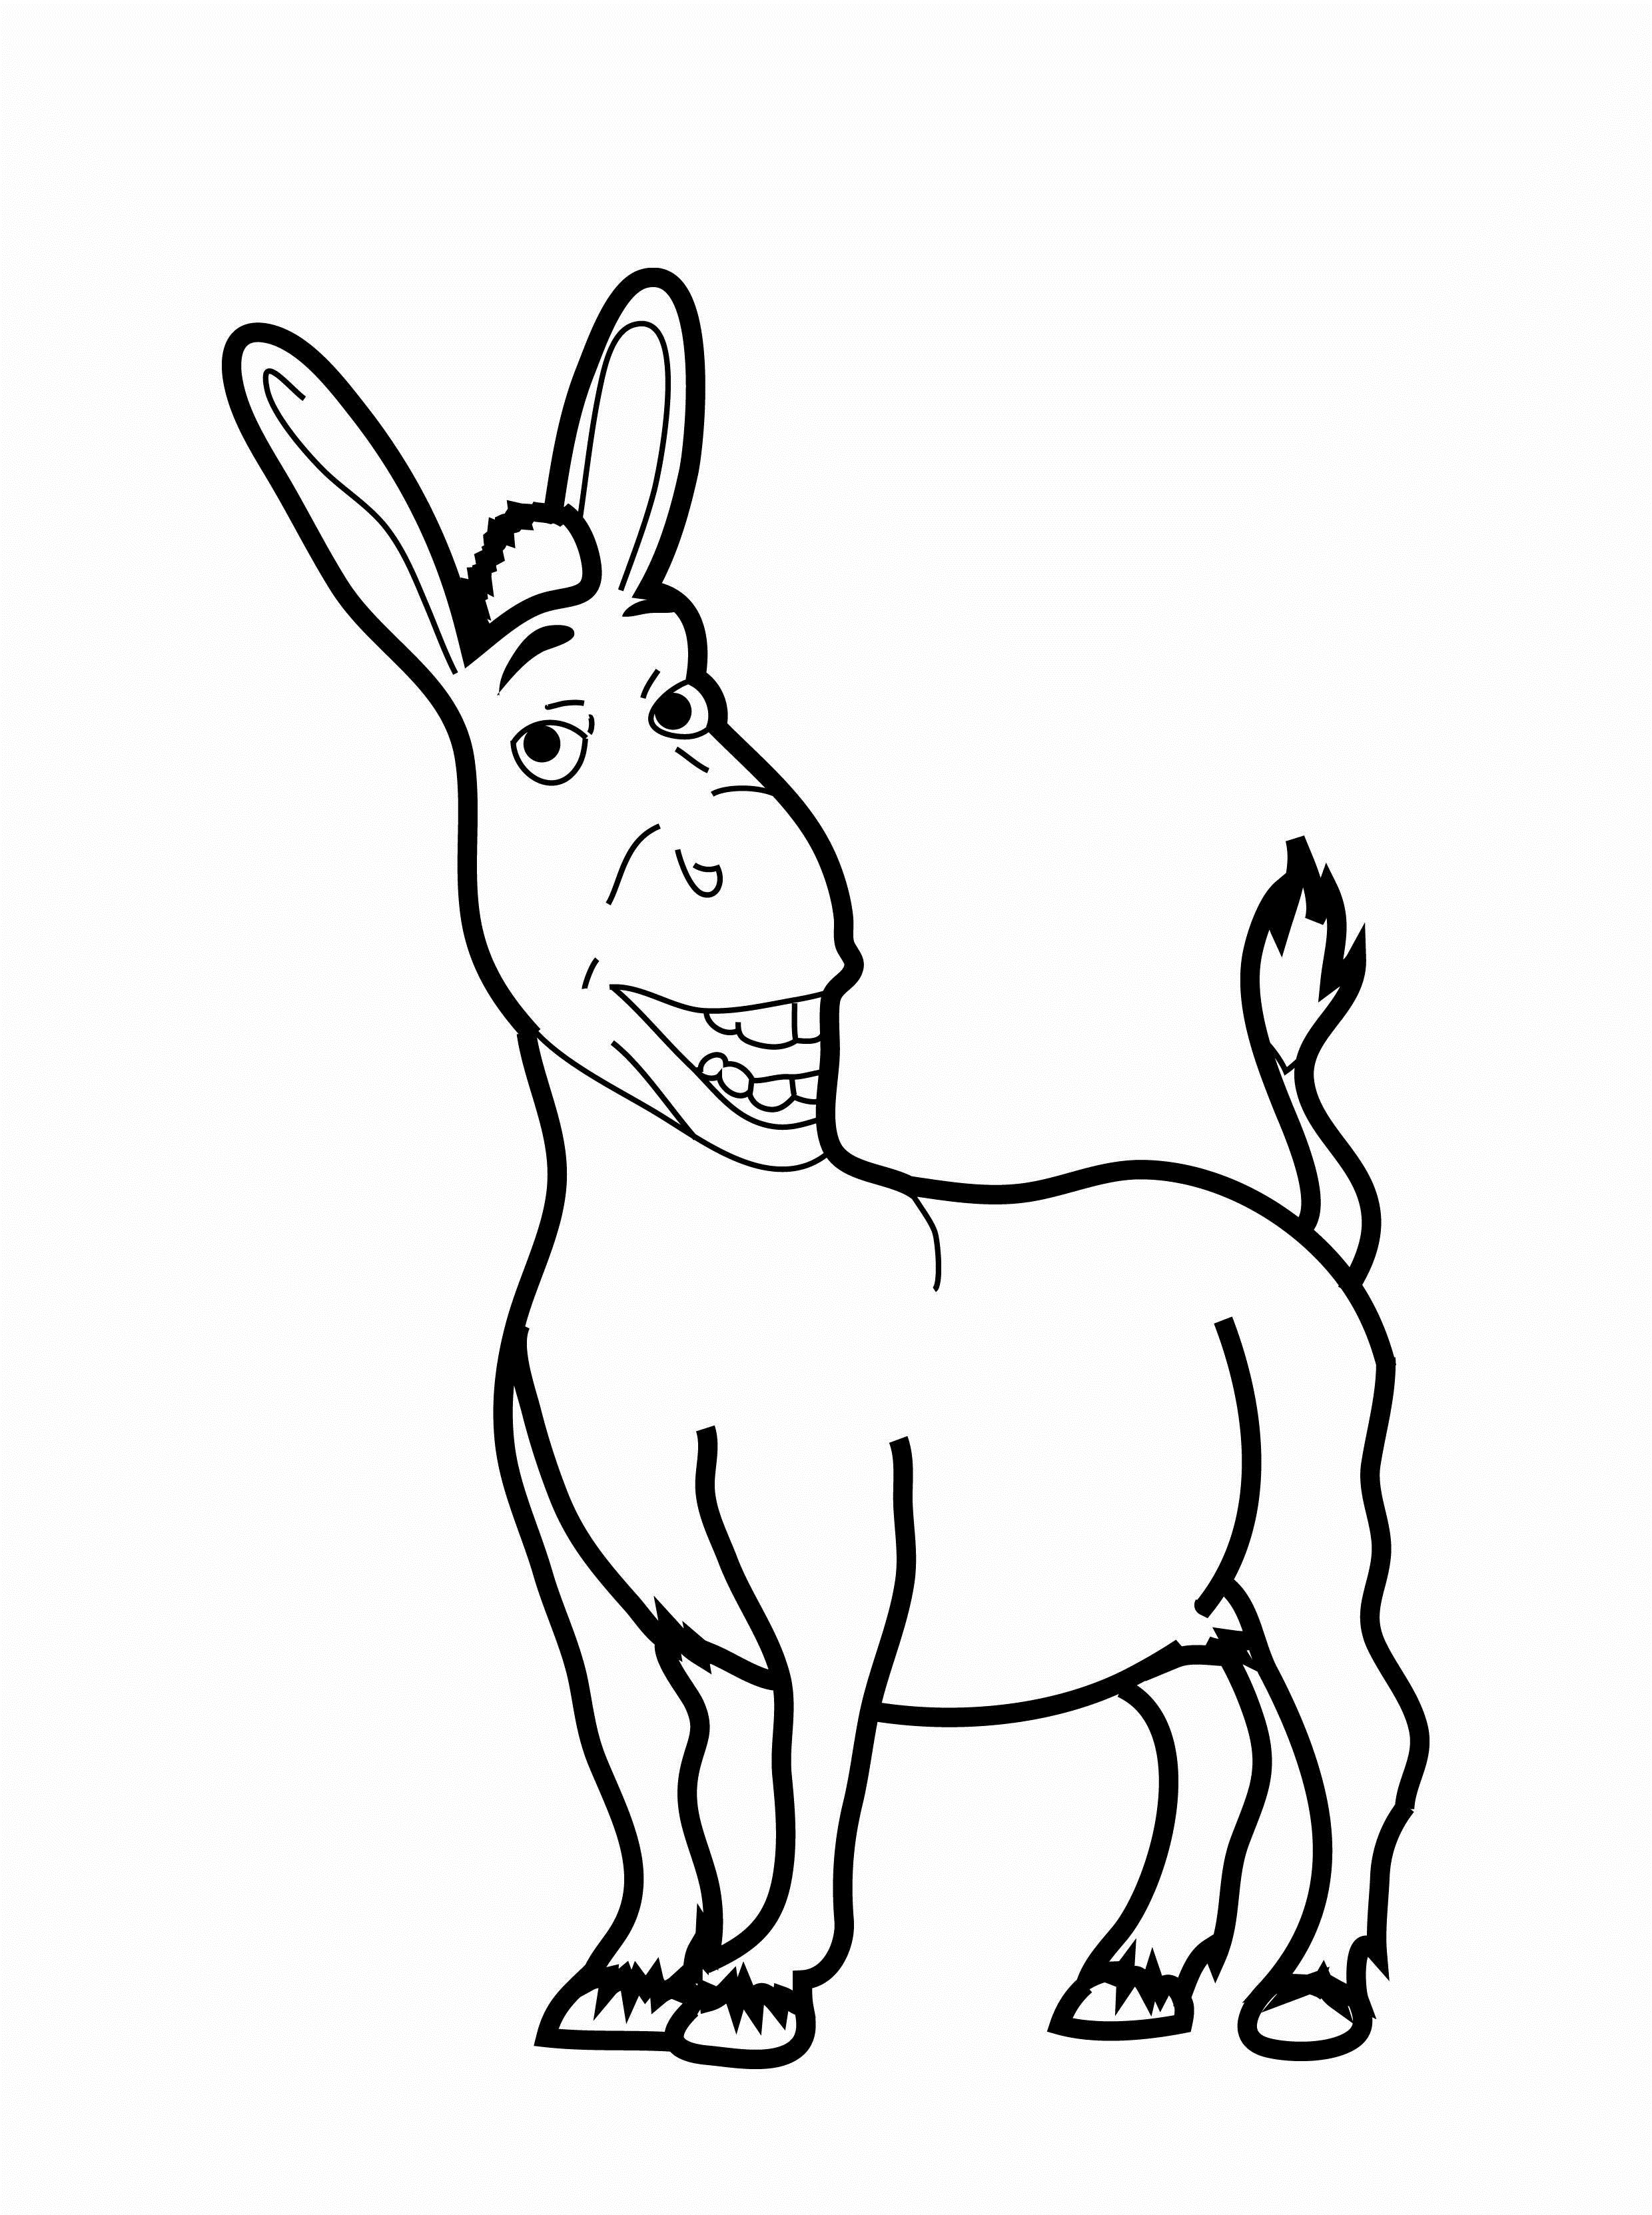 donkey pictures to print free printable donkey coloring pages tripafethna to donkey pictures print